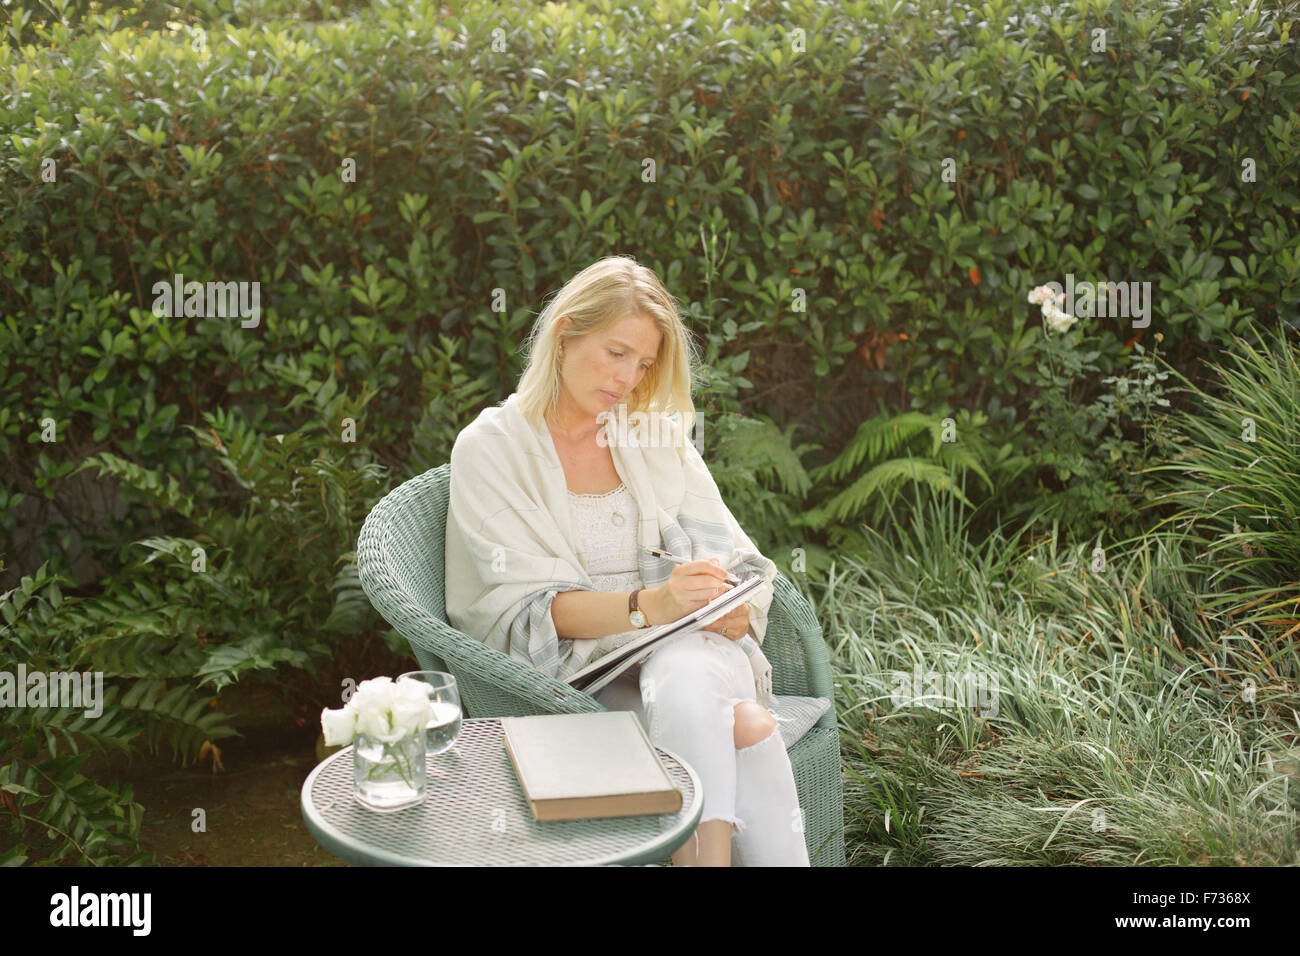 Blond woman sitting in a wicker chair in a garden, writing. - Stock Image